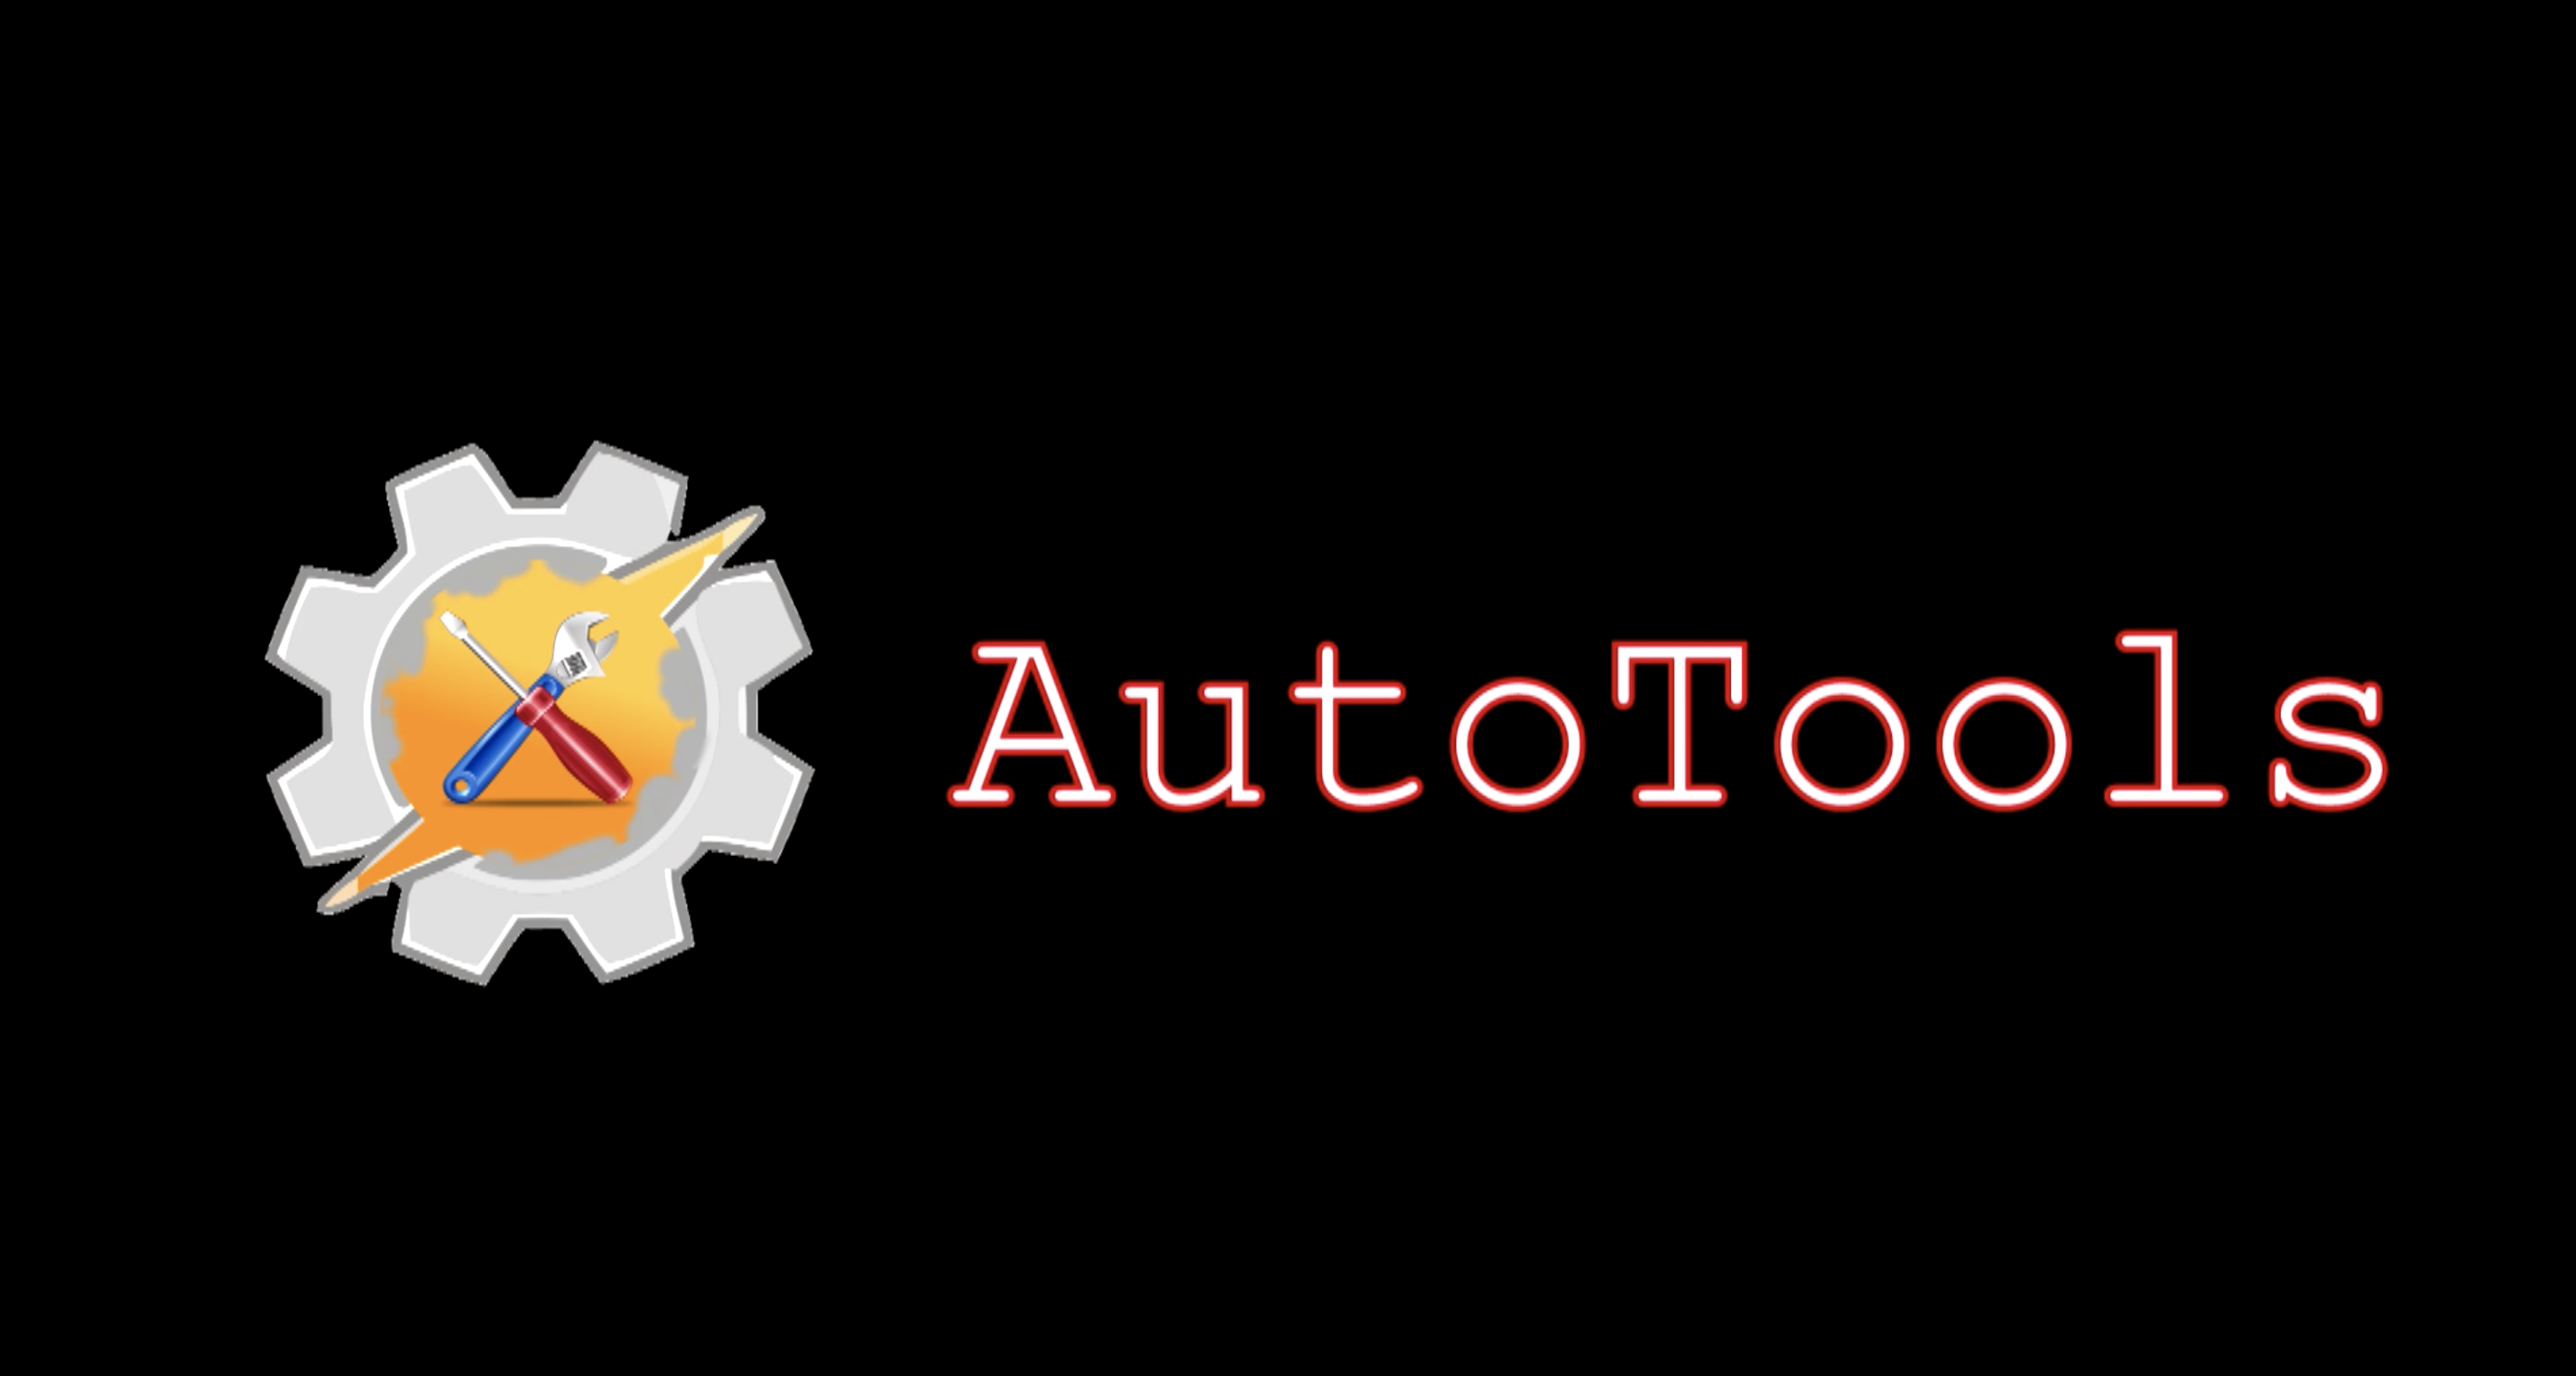 AutoTools 2 0 is now available, featuring web screens, HTML read